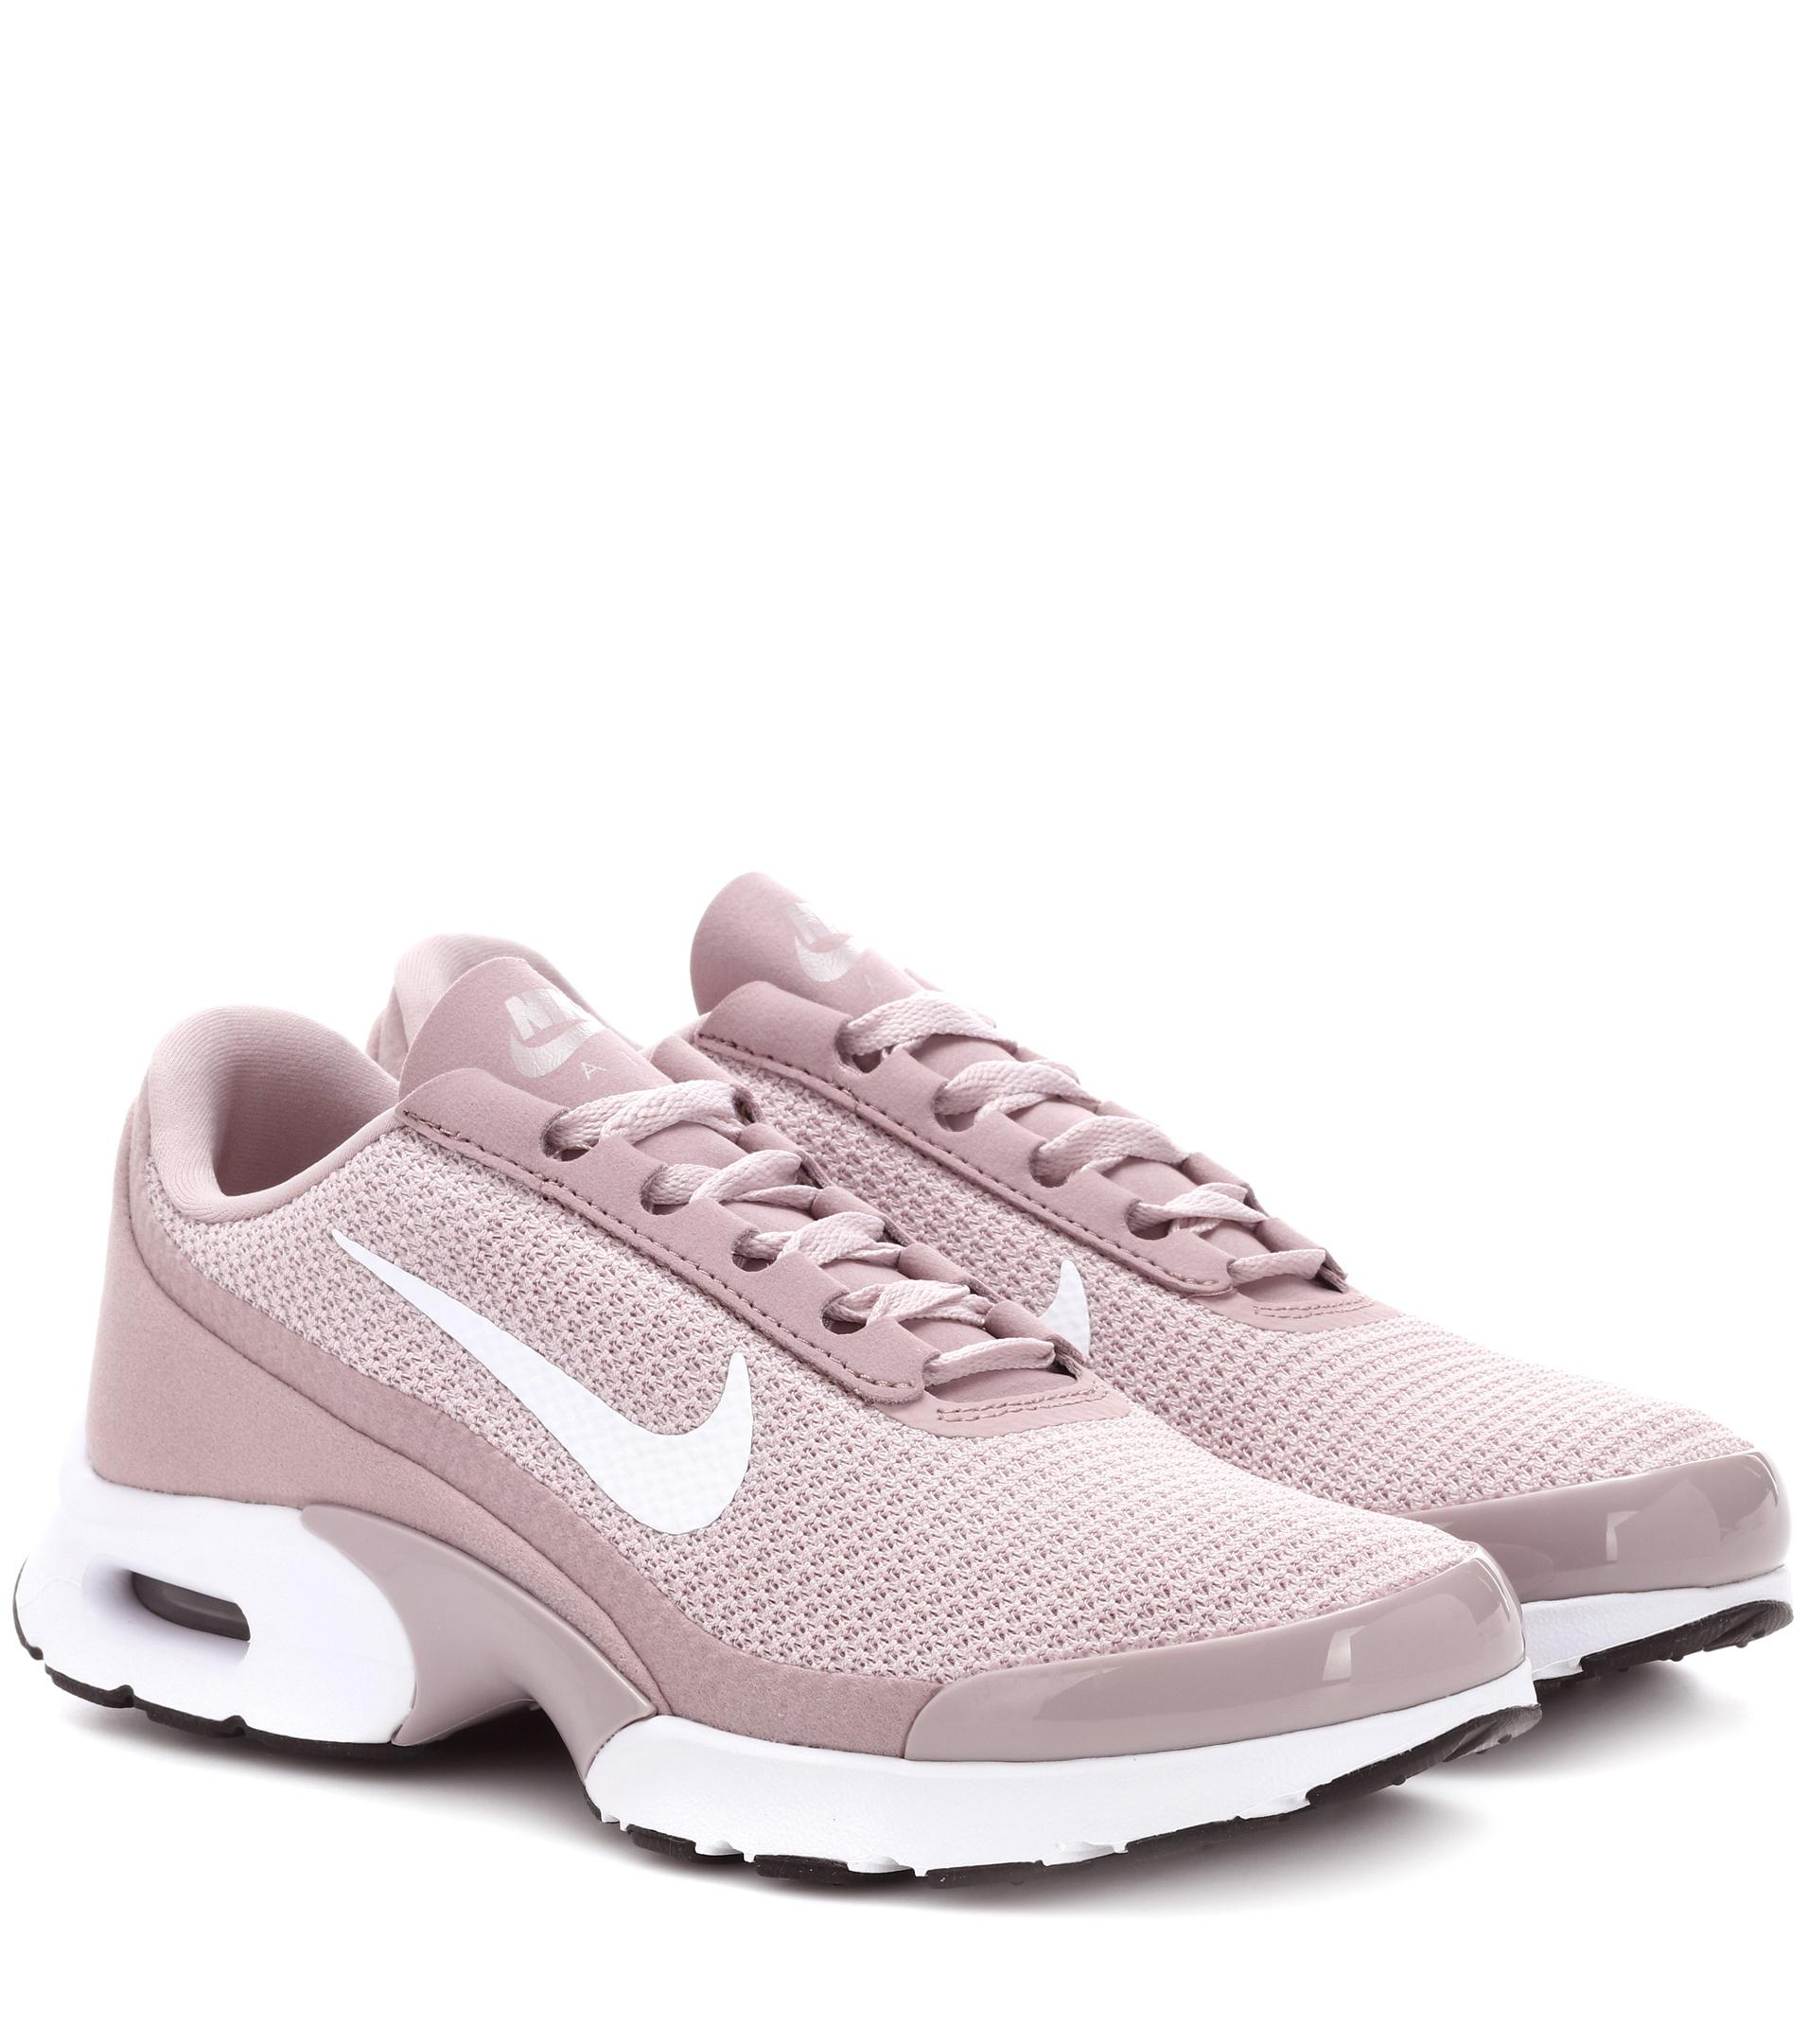 low priced 5242b 6cf79 Lyst - Nike Air Max Jewell Sneakers in Pink